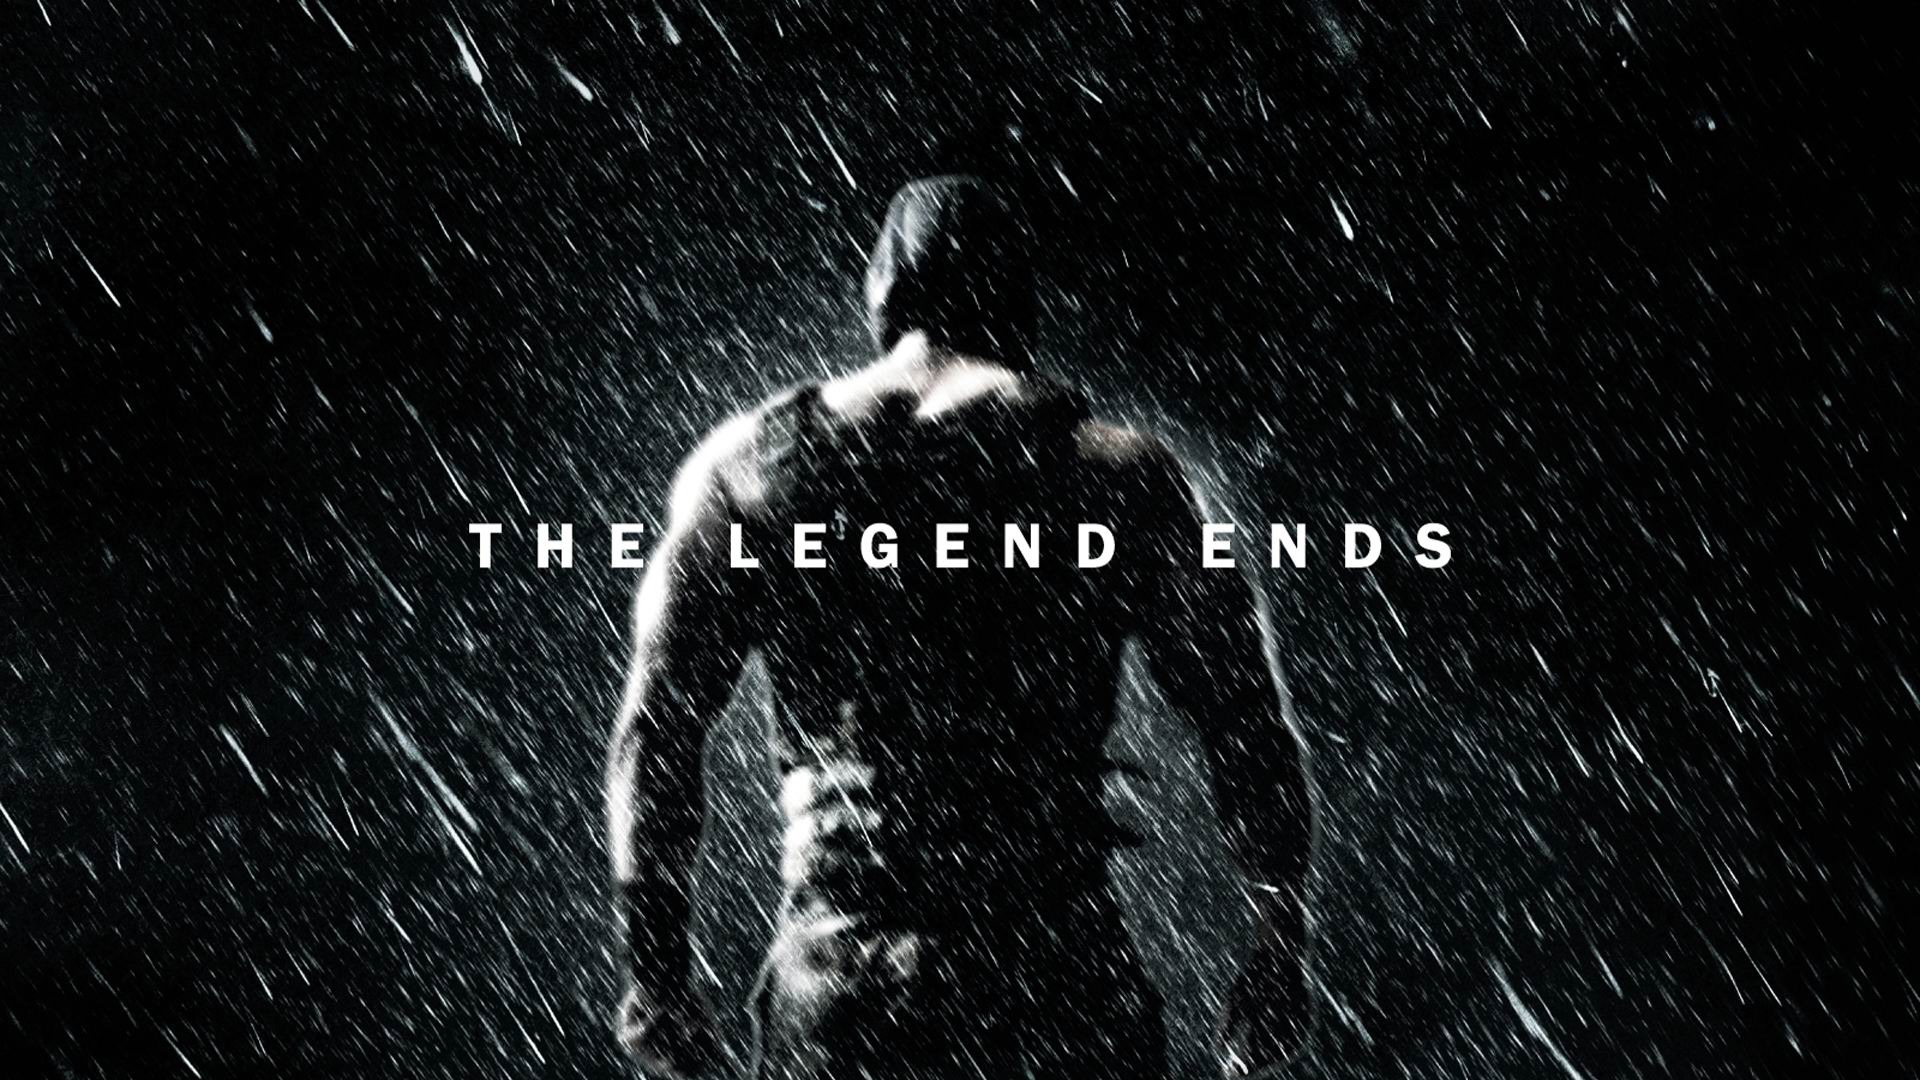 The Dark Knight Rises 2012 Movie Hd Wallpaper 05 Preview